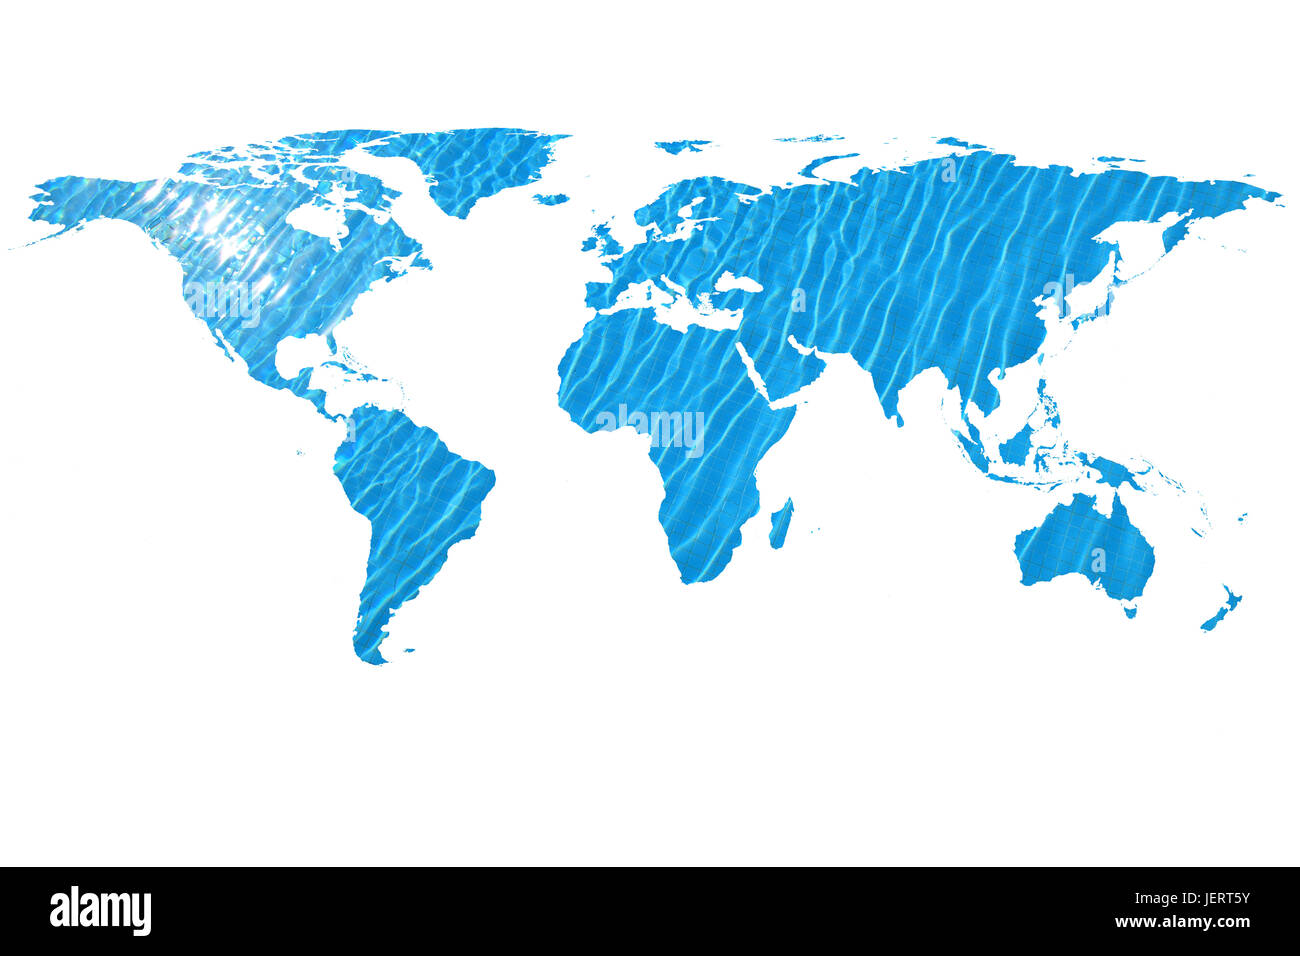 conceptual image of flat world map and water. NASA flat world map image used to furnish this image. - Stock Image